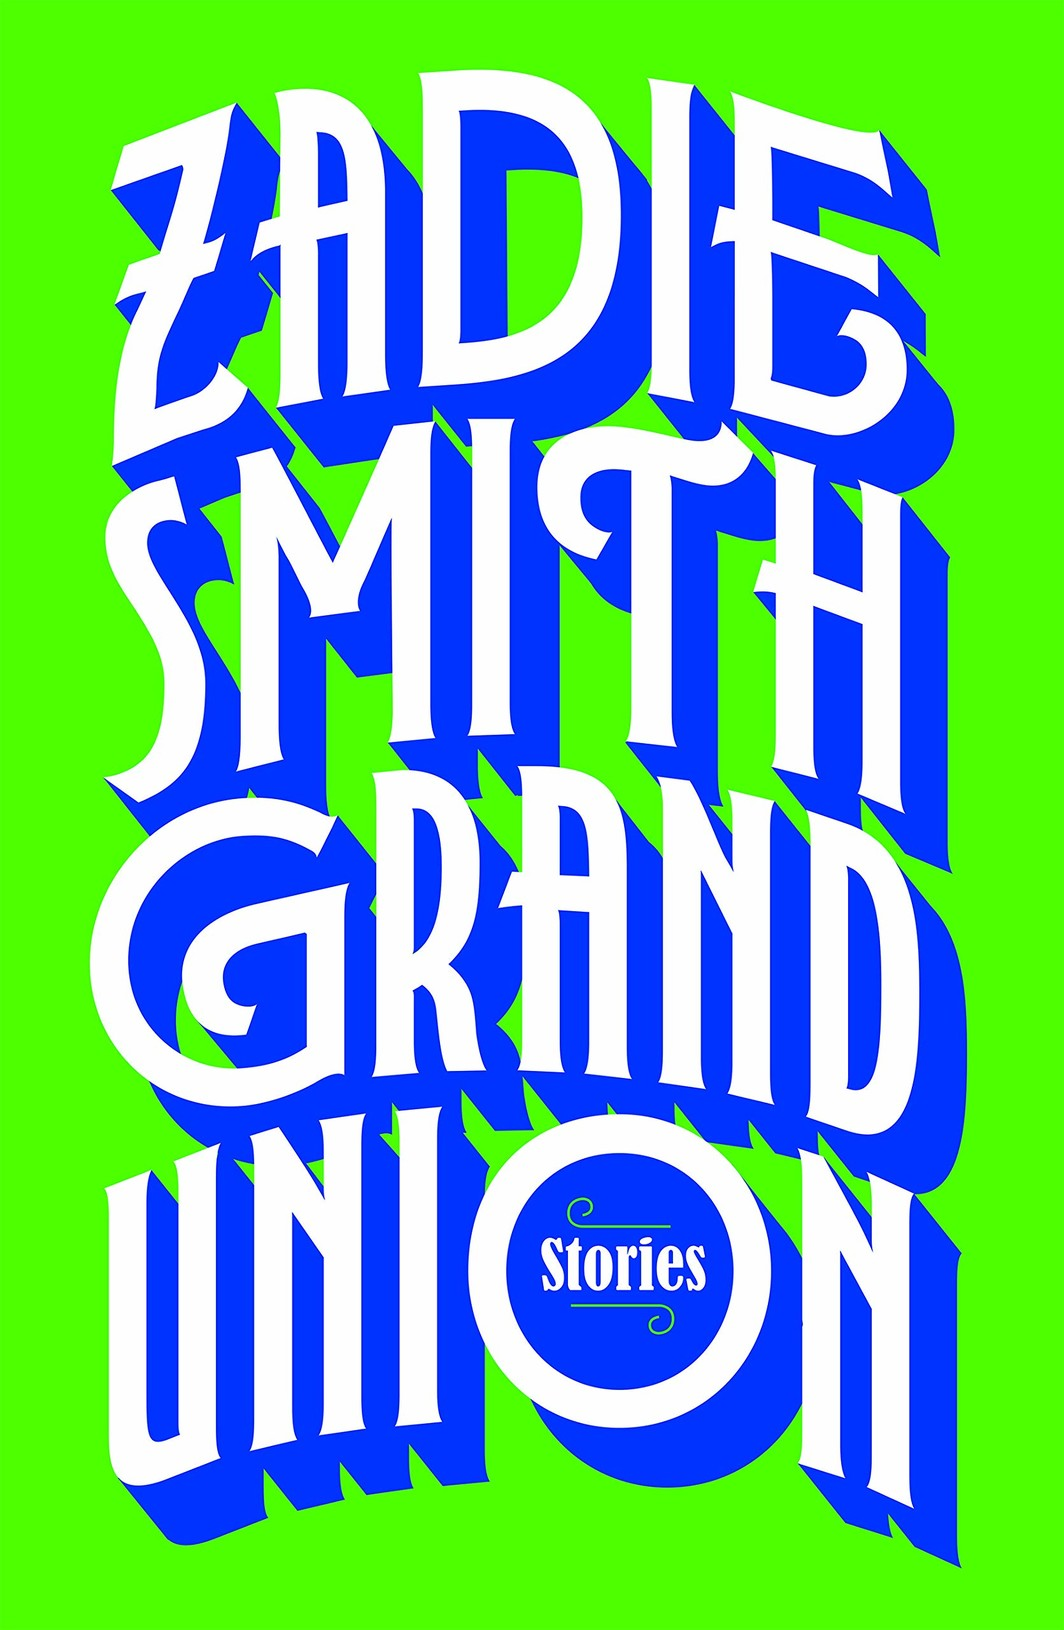 The cover of Grand Union